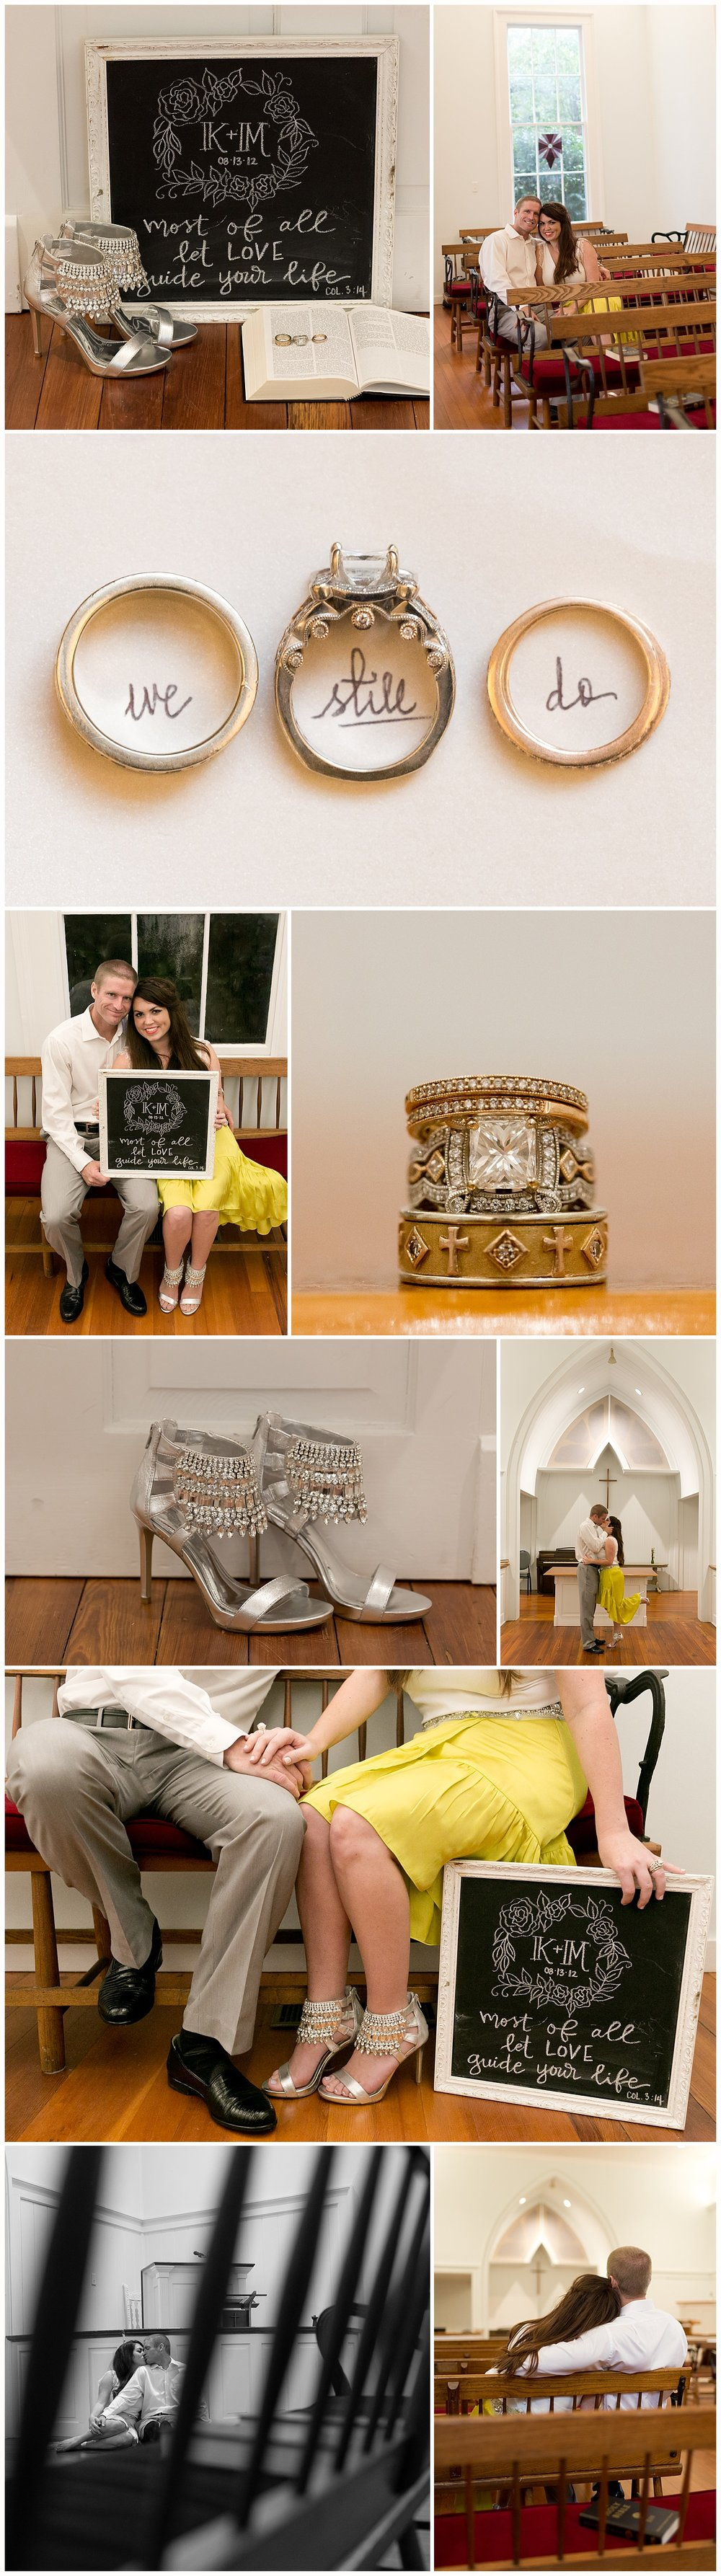 vow renewal details - chalkboard, rings, shoes - Ocean Springs, Mississippi wedding photographer